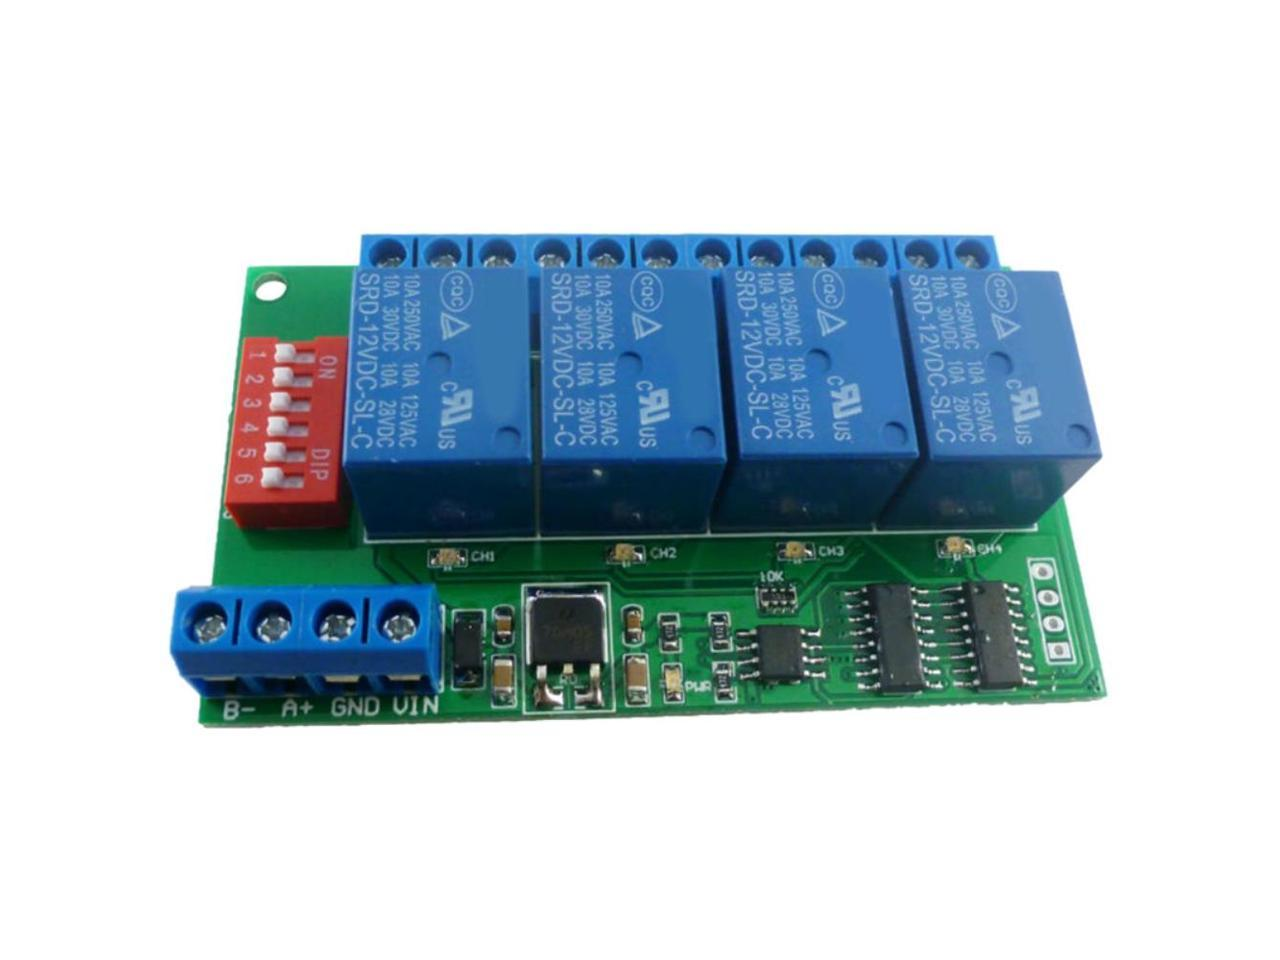 4 Channel Dc 12v Rs485 Relay Module Modbus Rtu And At Command Remote Control Switch For Plc Ptz